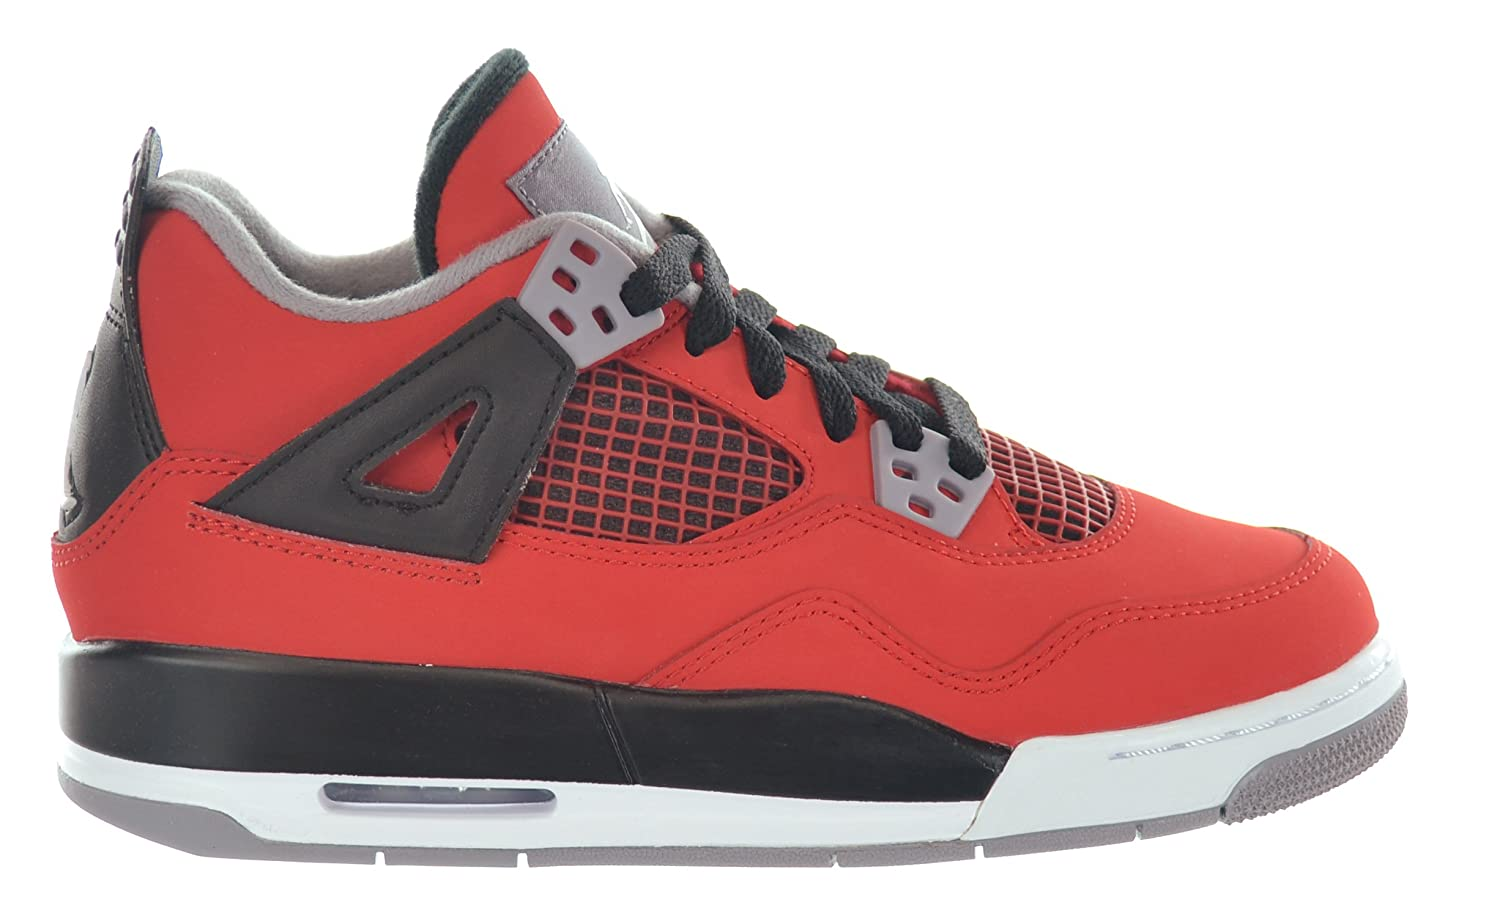 lower price with ee0fd c4622 Amazon.com   NIKE Boys Air Jordan 4 Retro (GS) Toro Suede Basketball Shoes    Fashion Sneakers